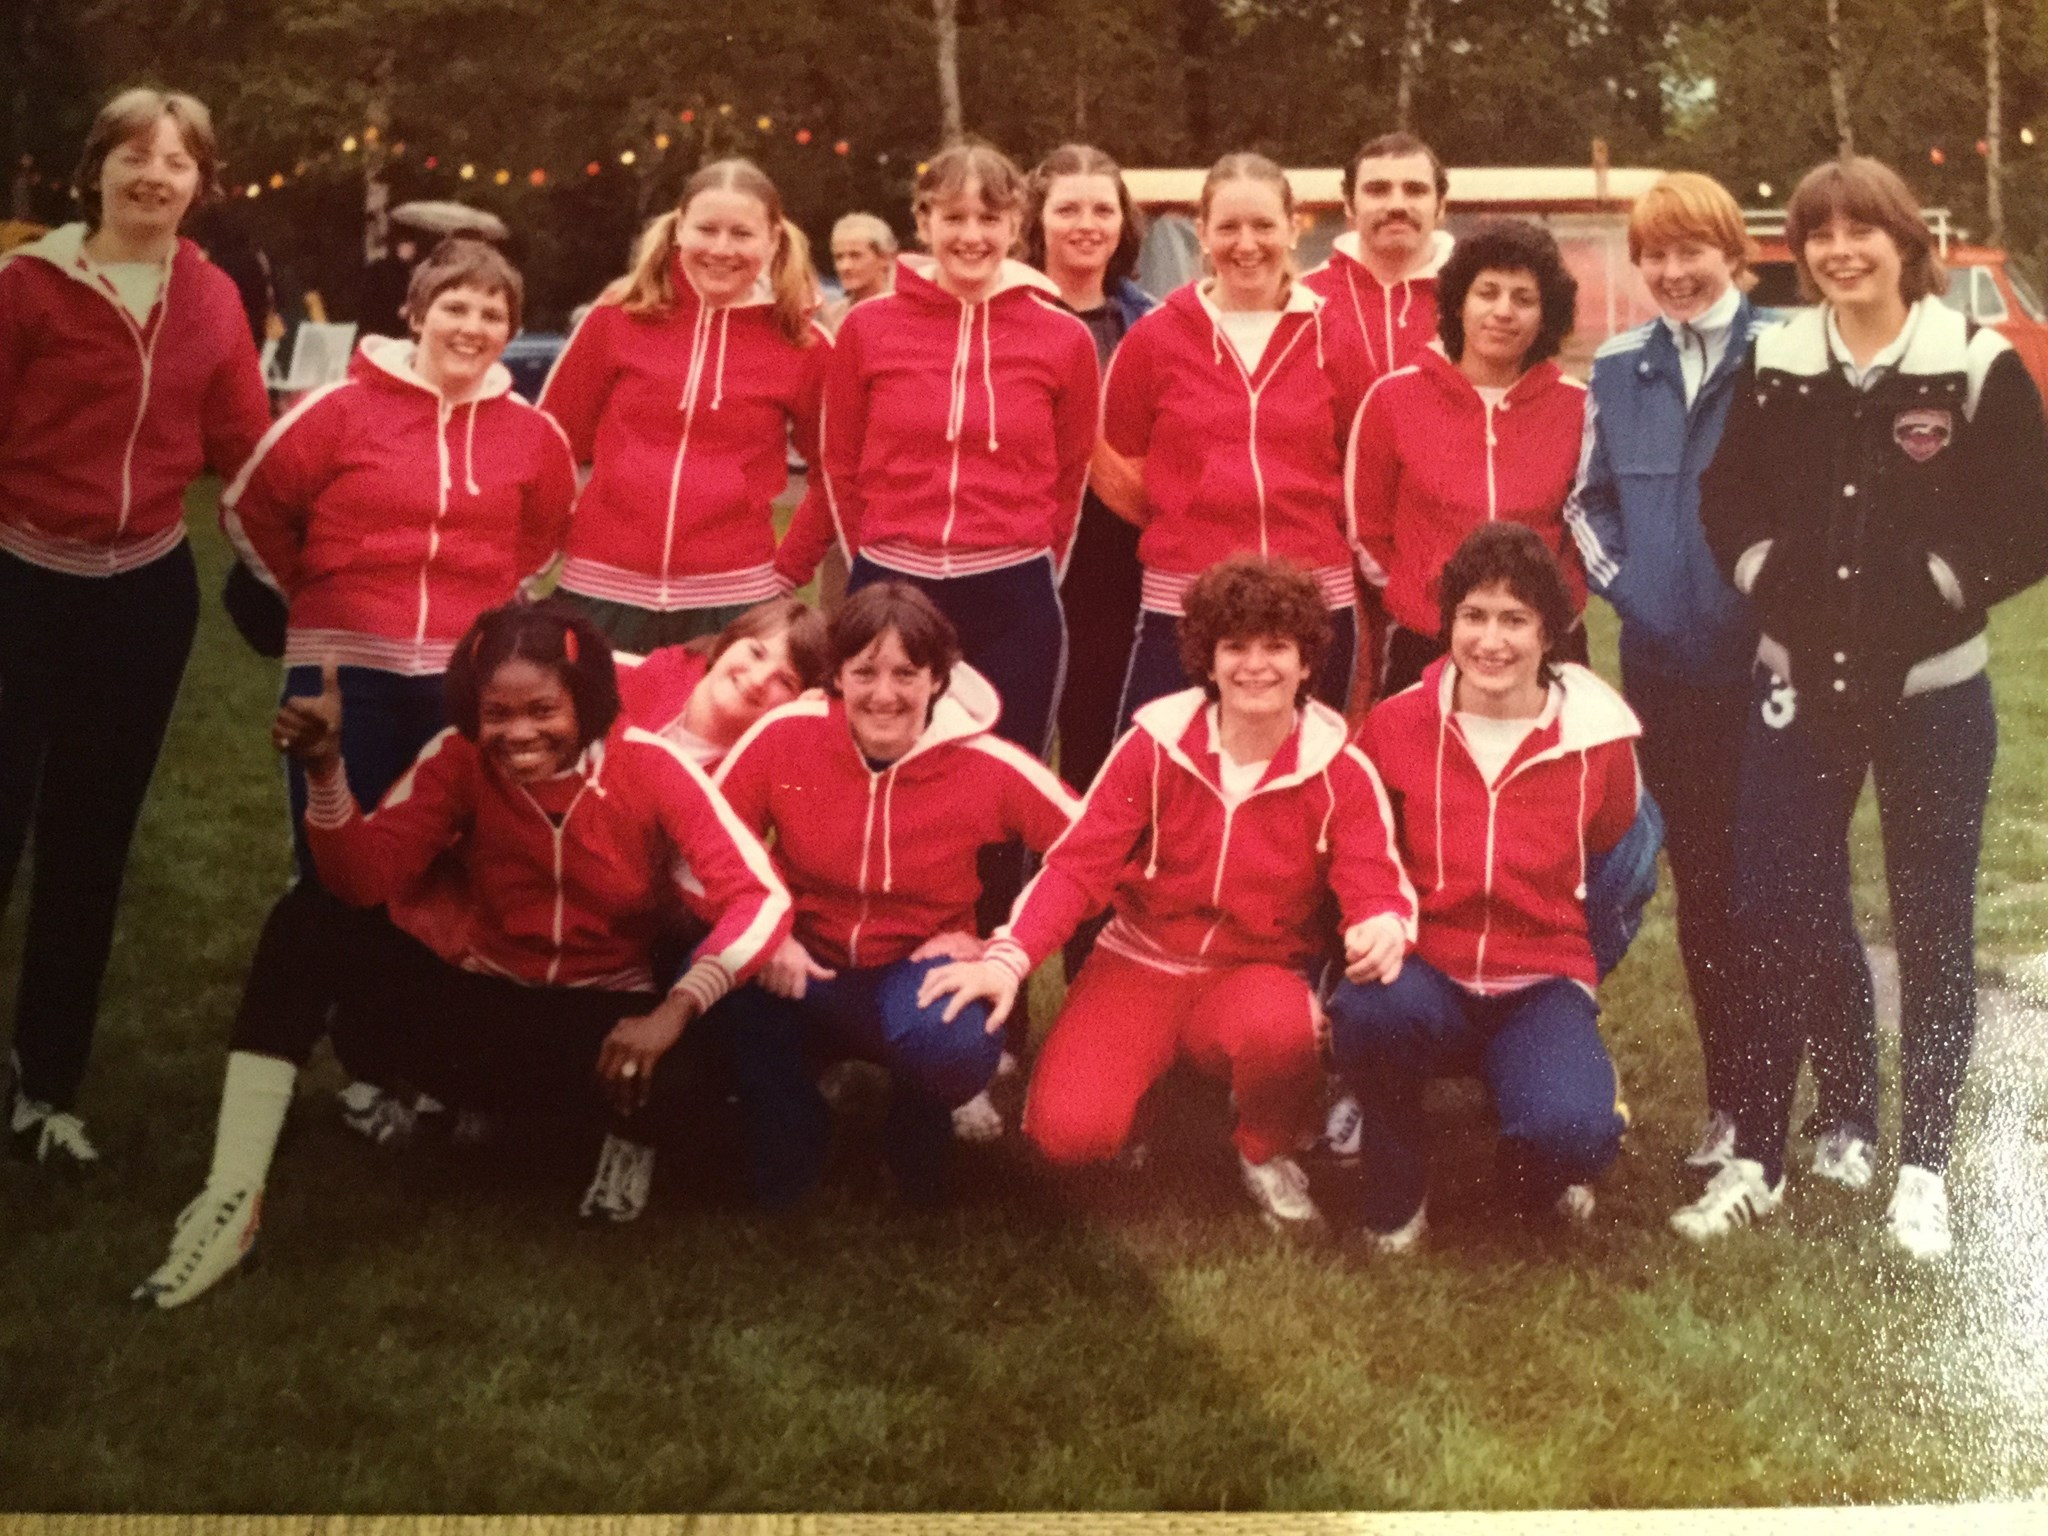 When Ruislip Eagles visited me to play in a tournament when I lived in Holland - good times!